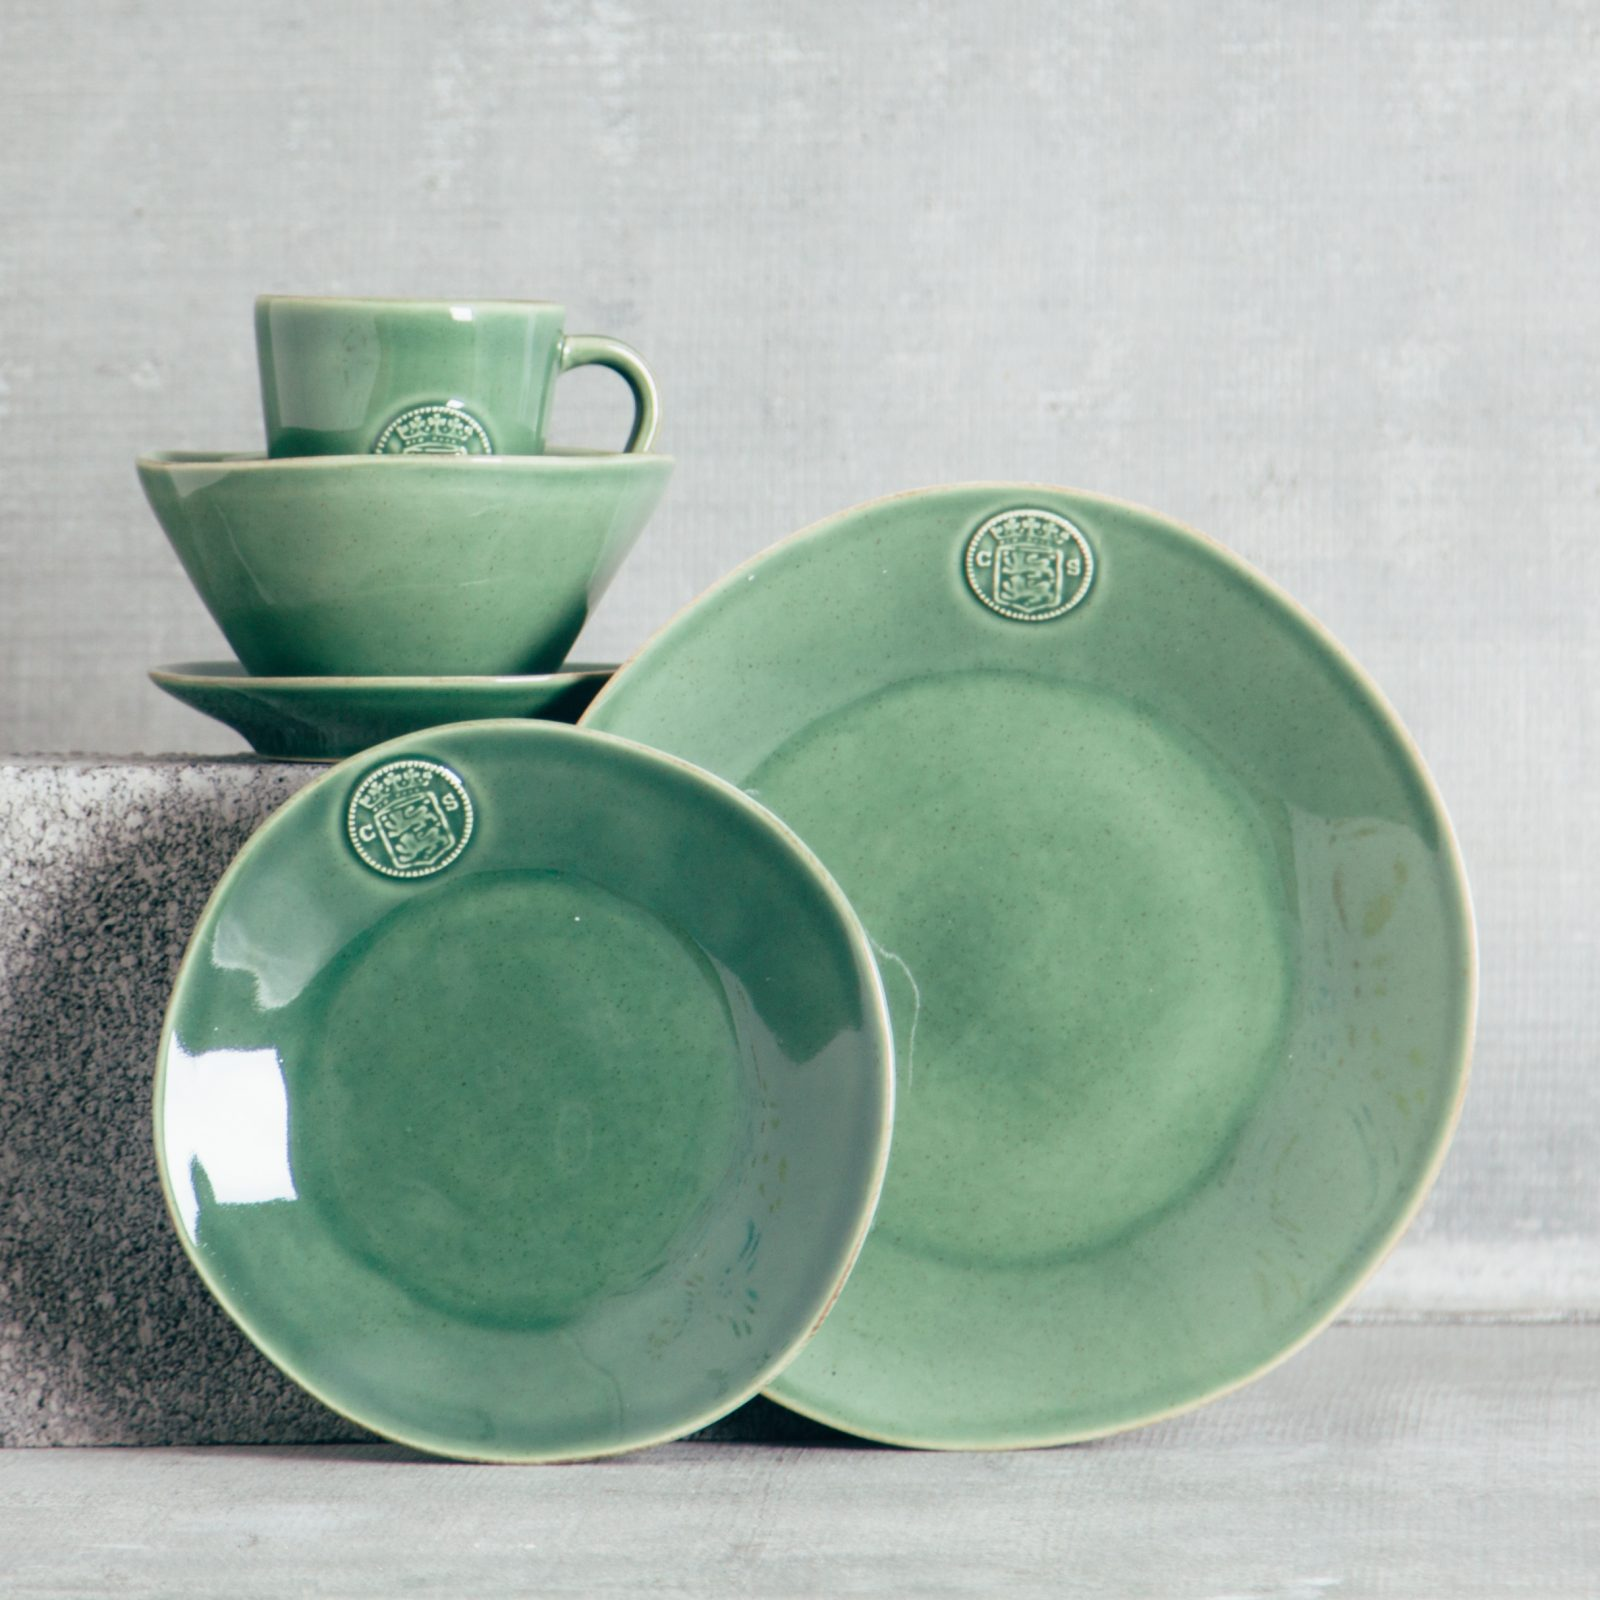 Forum Green Dinnerware Sets Discontinued Limited Stock